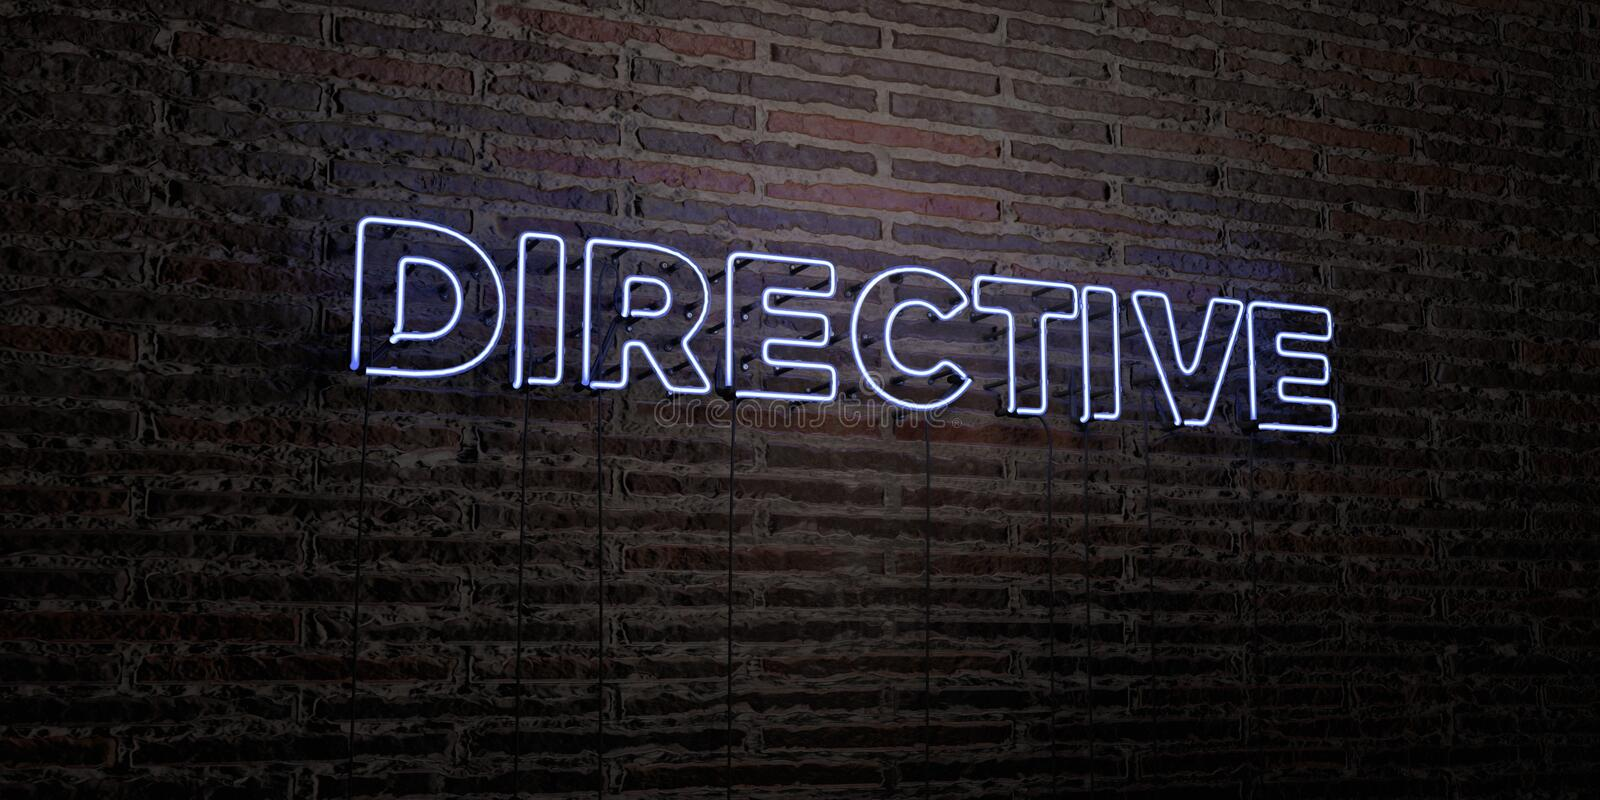 DIRECTIVE -Realistic Neon Sign on Brick Wall background - 3D rendered royalty free stock image. Can be used for online banner ads and direct mailers stock illustration